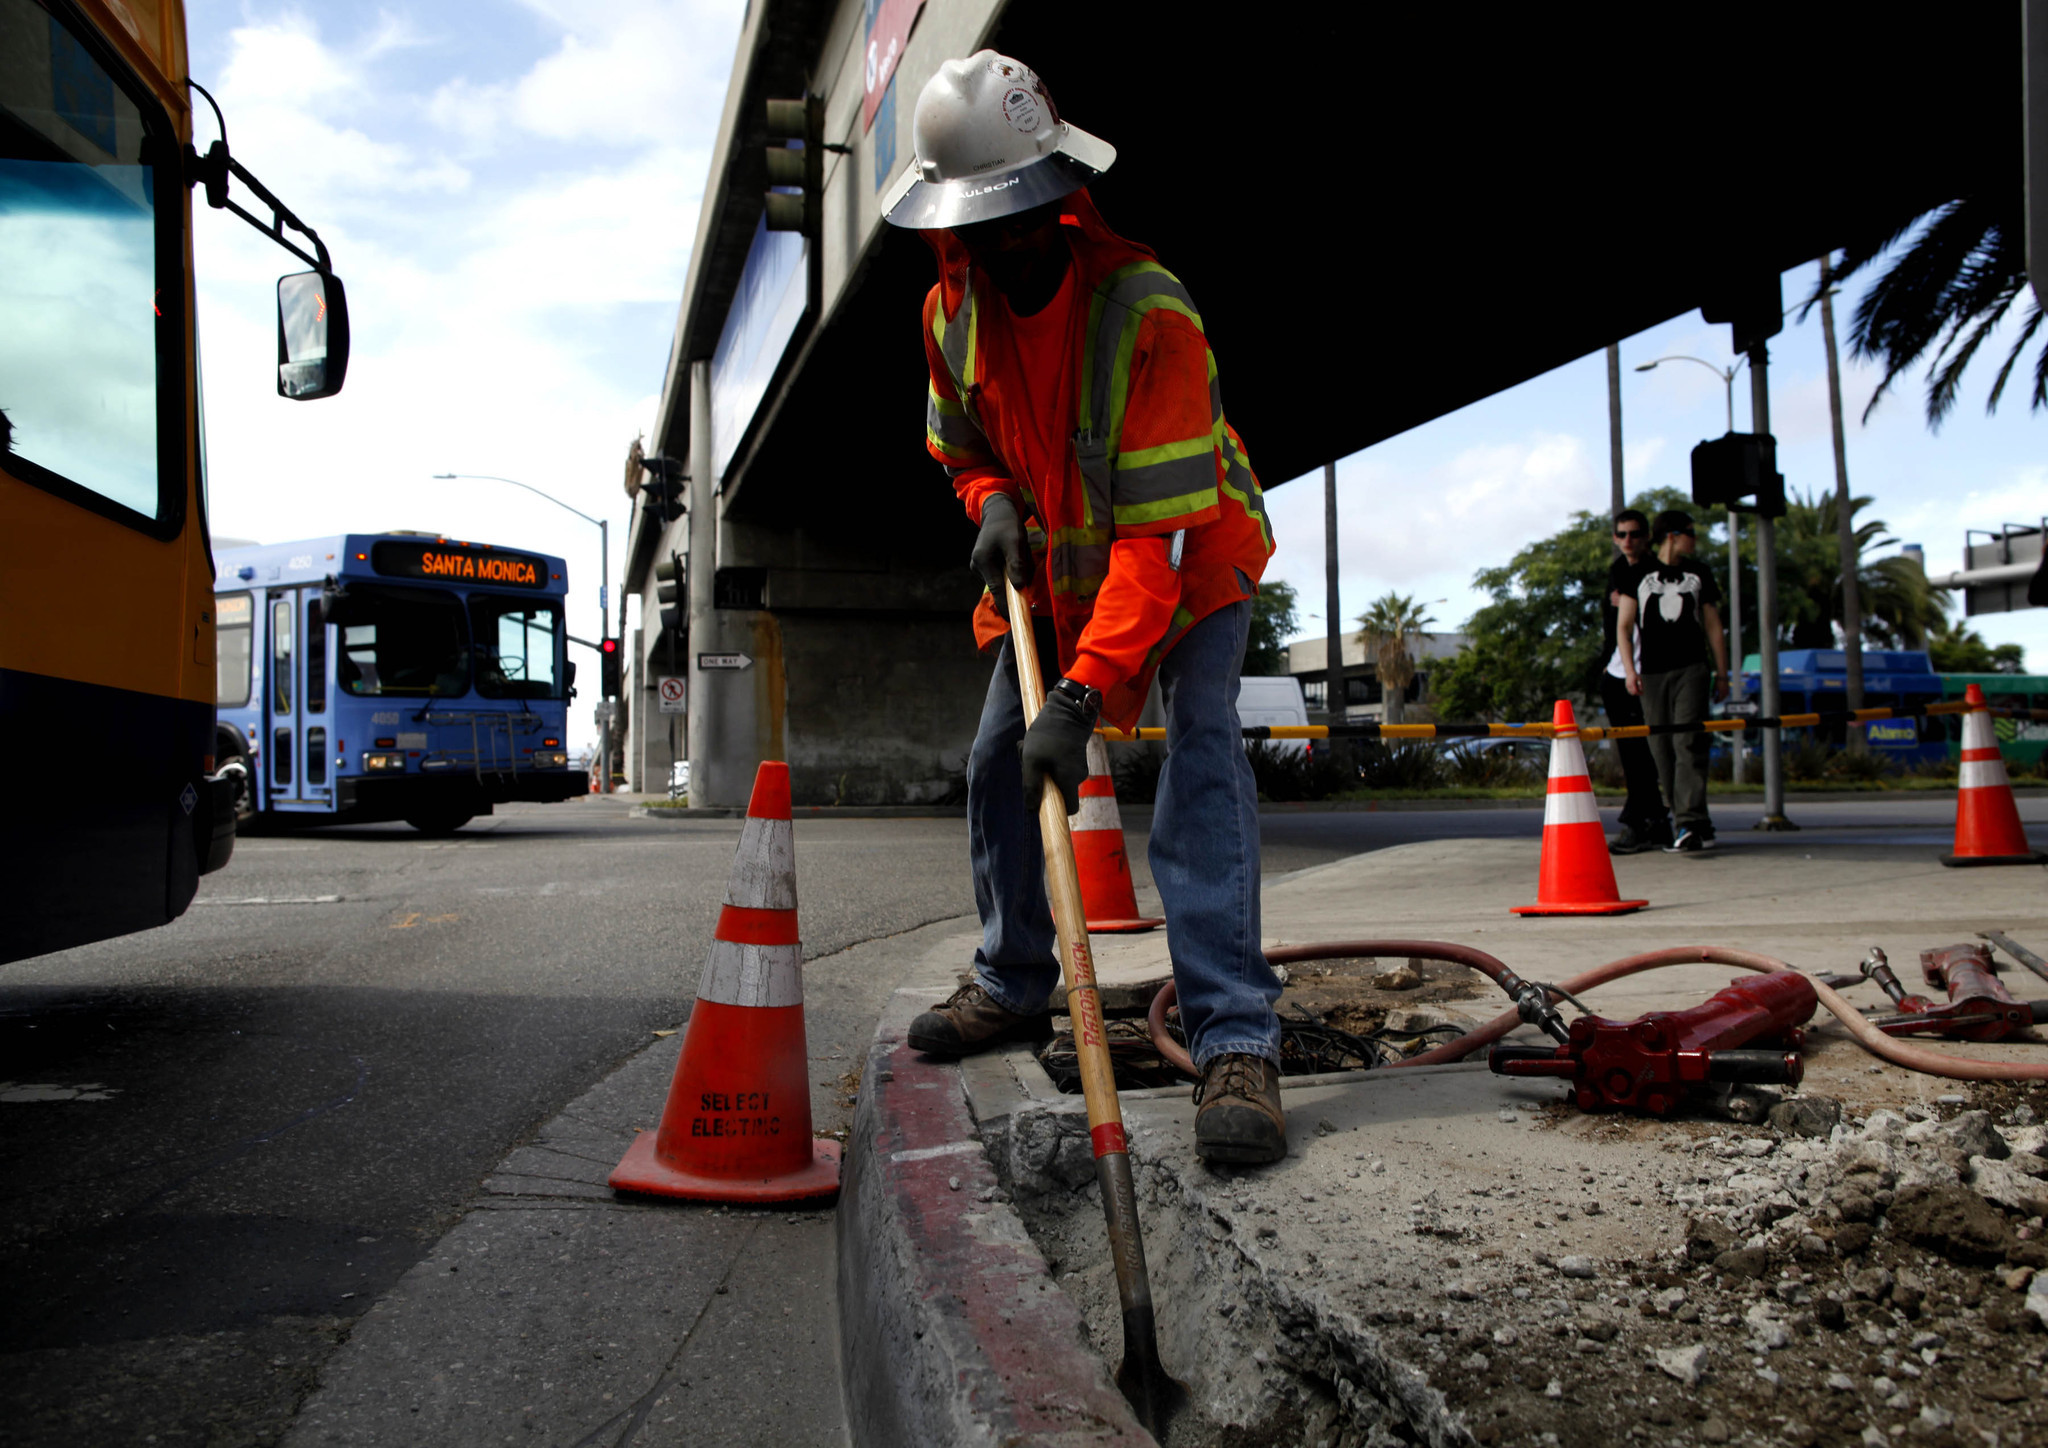 A construction worker digs next to a roadway at Los Angeles International Airport. (Barbara Davidson / Los Angeles Times)